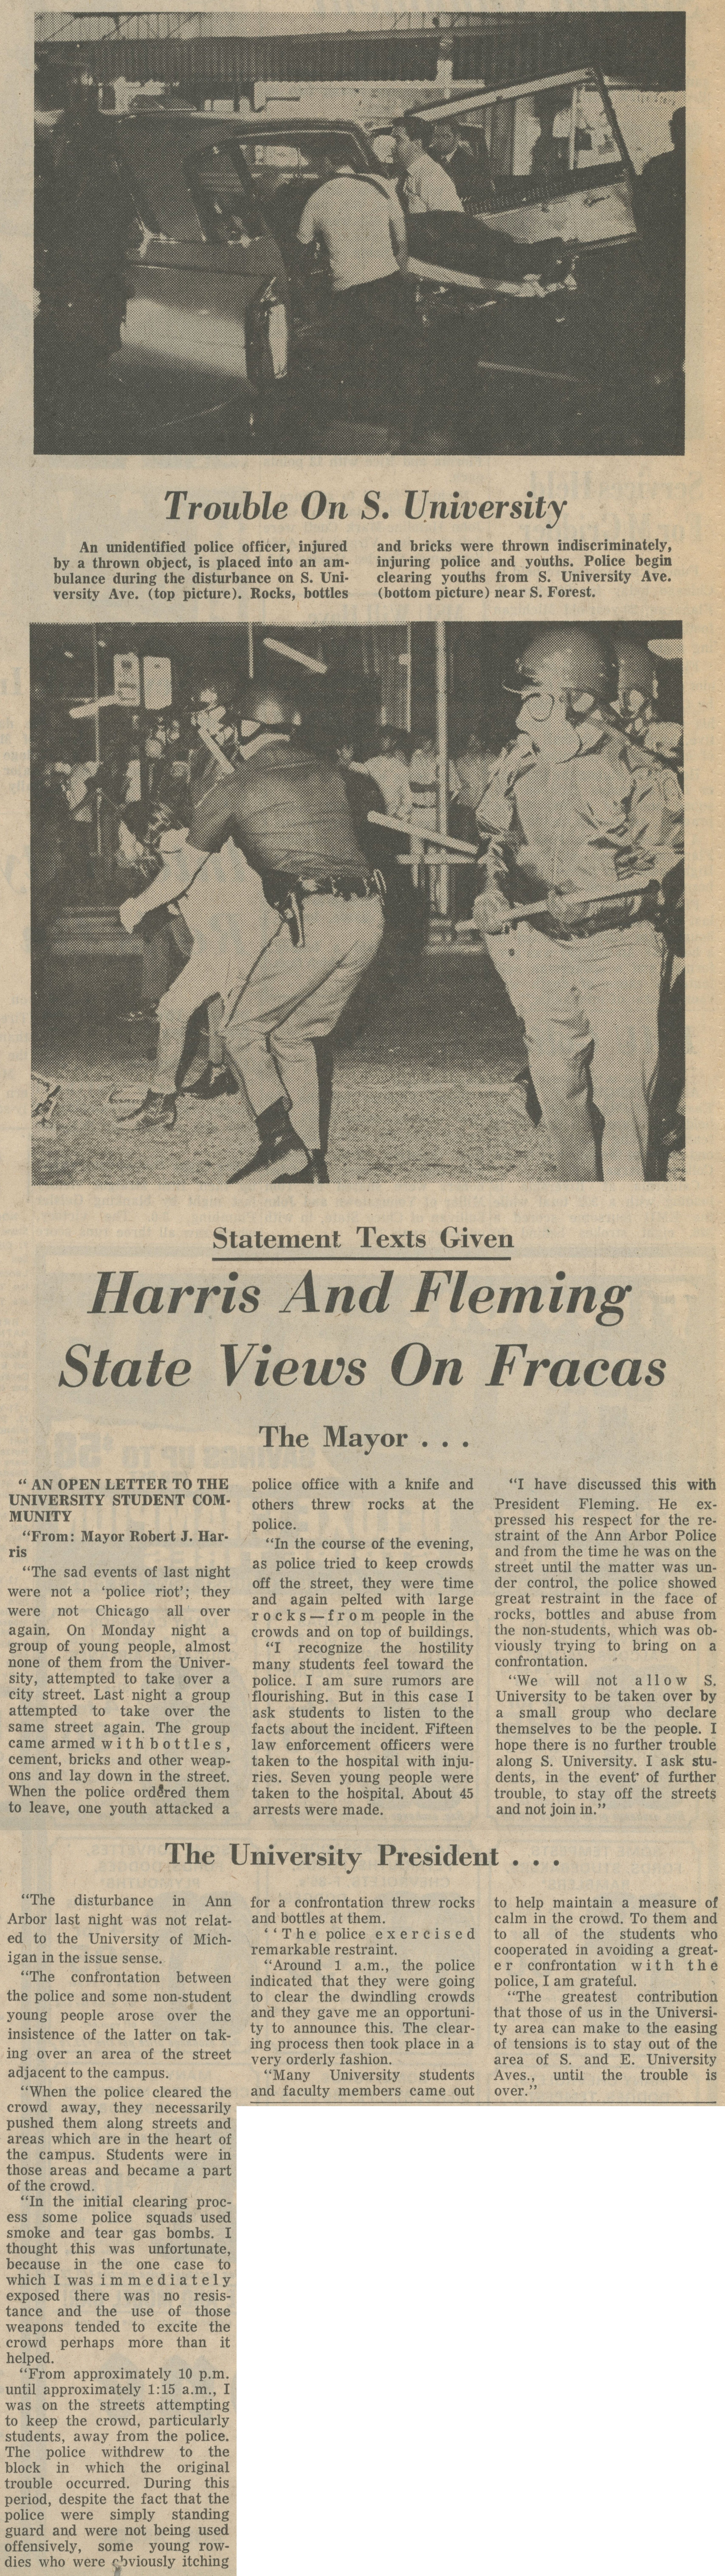 Harris and Fleming State Views on Fracas image